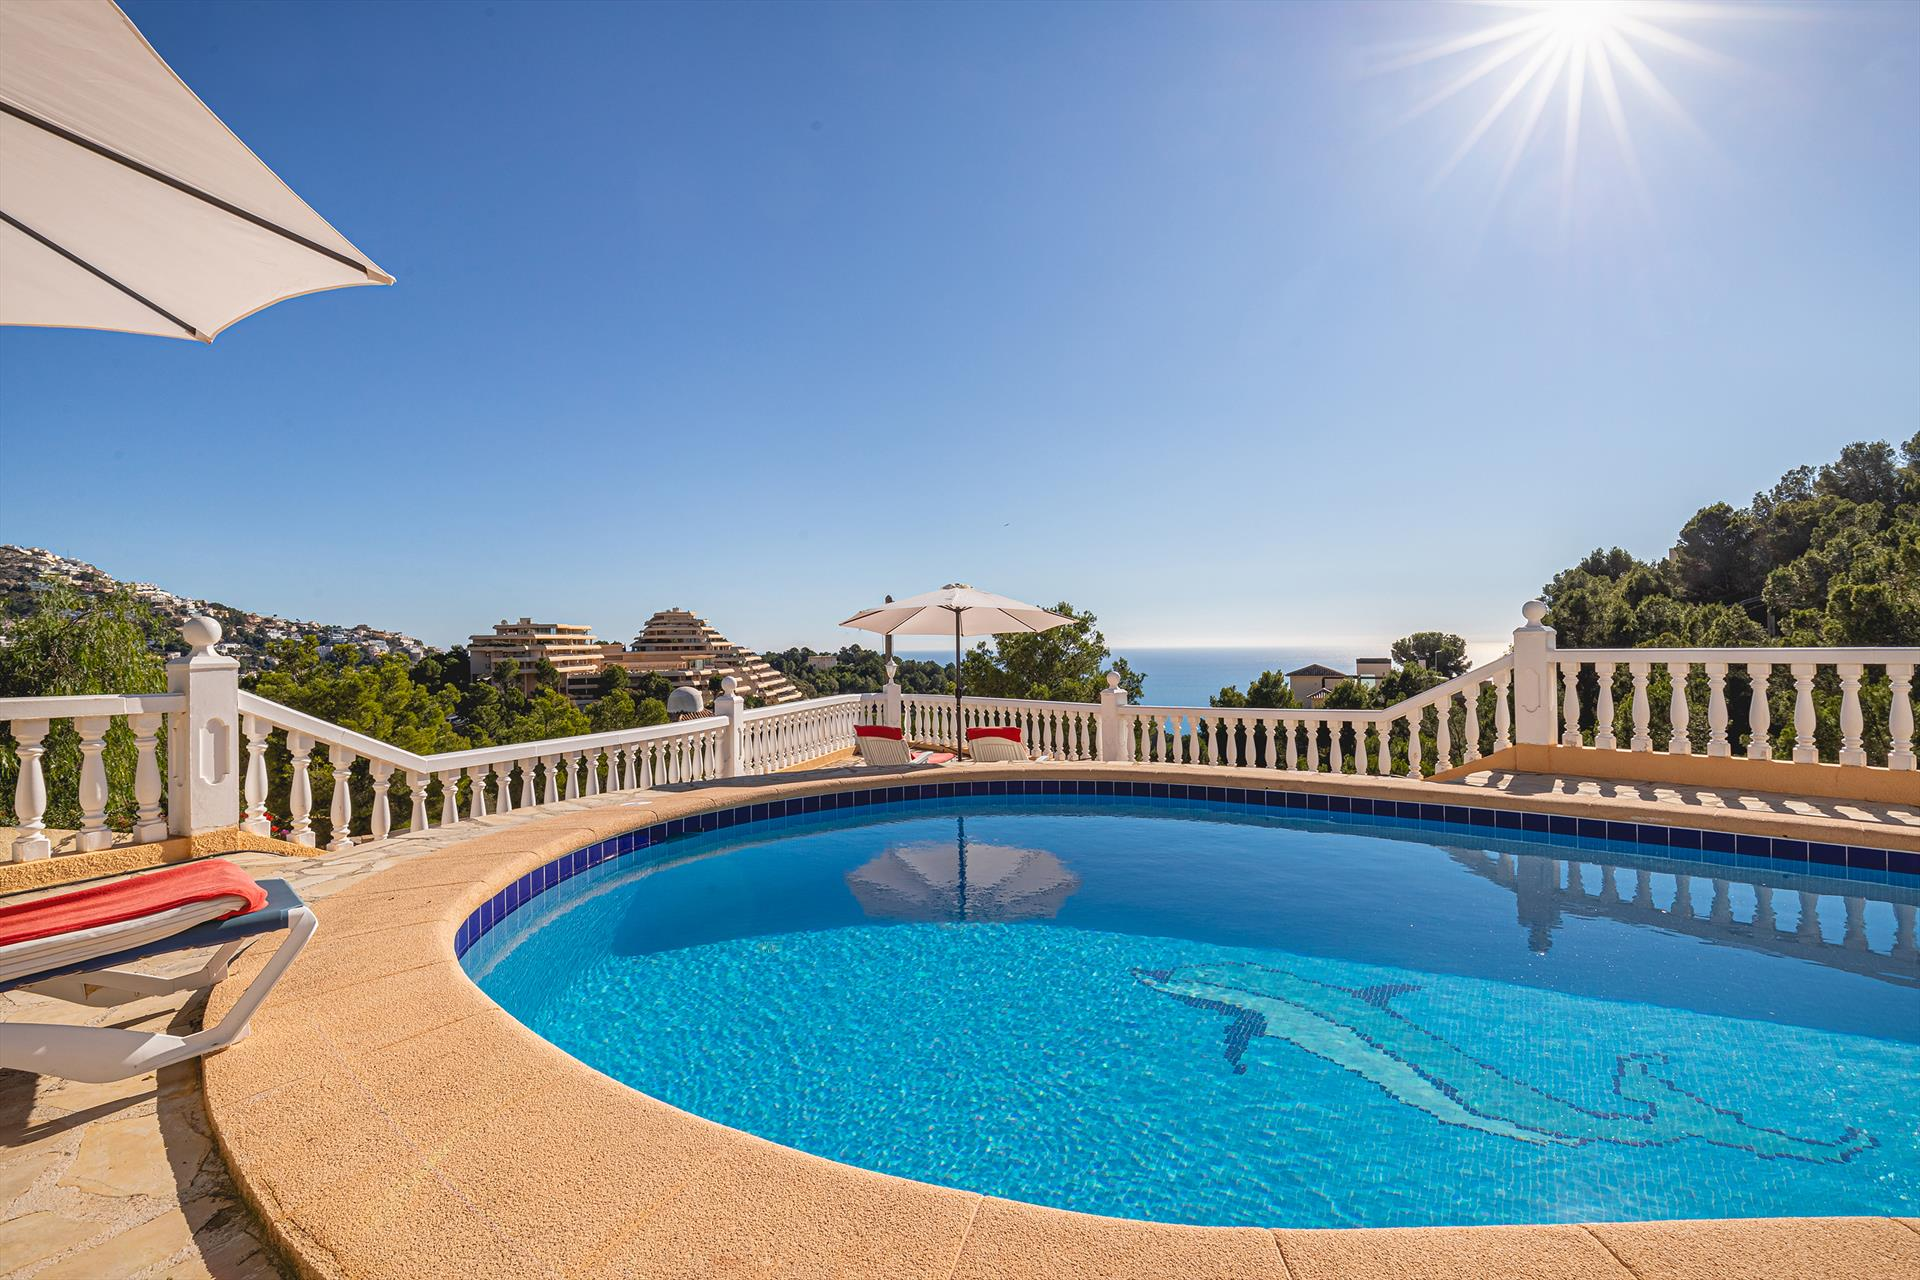 Casa Urlisa, Villa  with private pool in Altea, on the Costa Blanca, Spain for 6 persons...